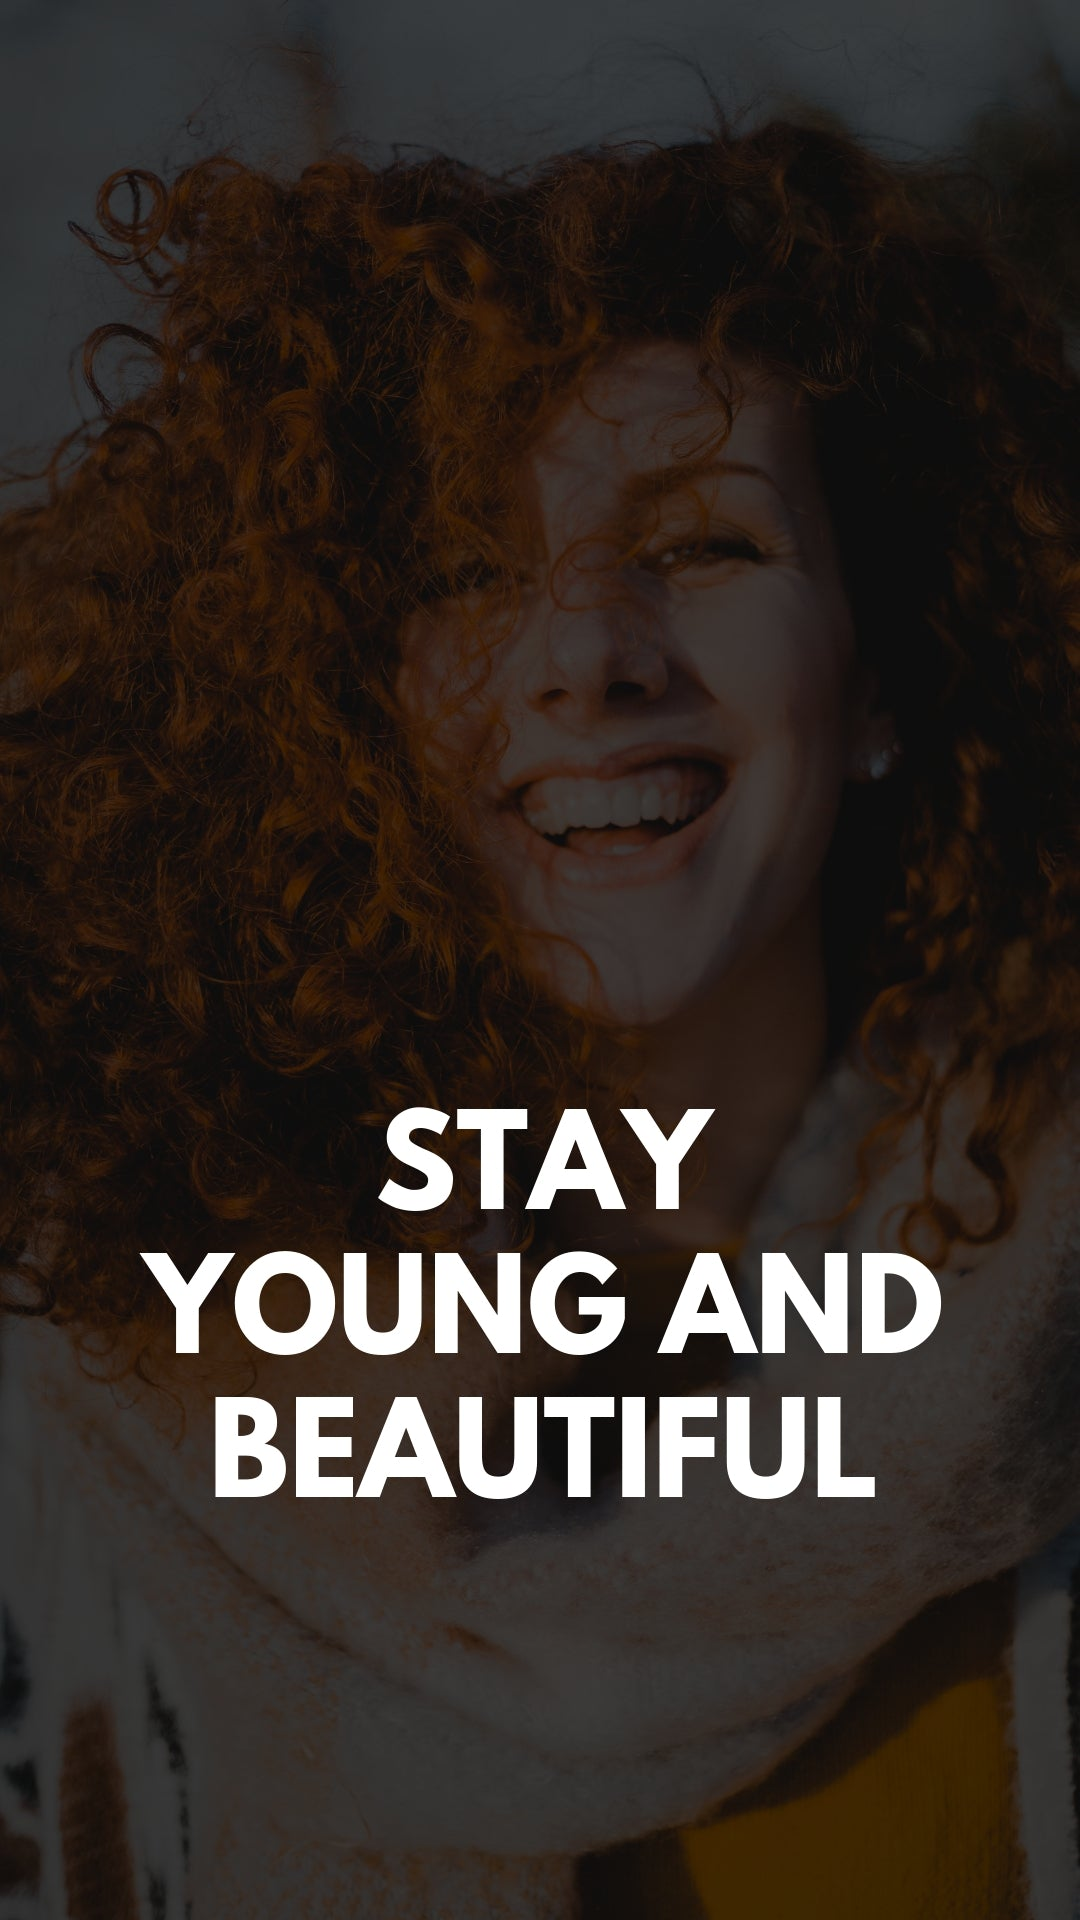 Stay Young and Beautiful